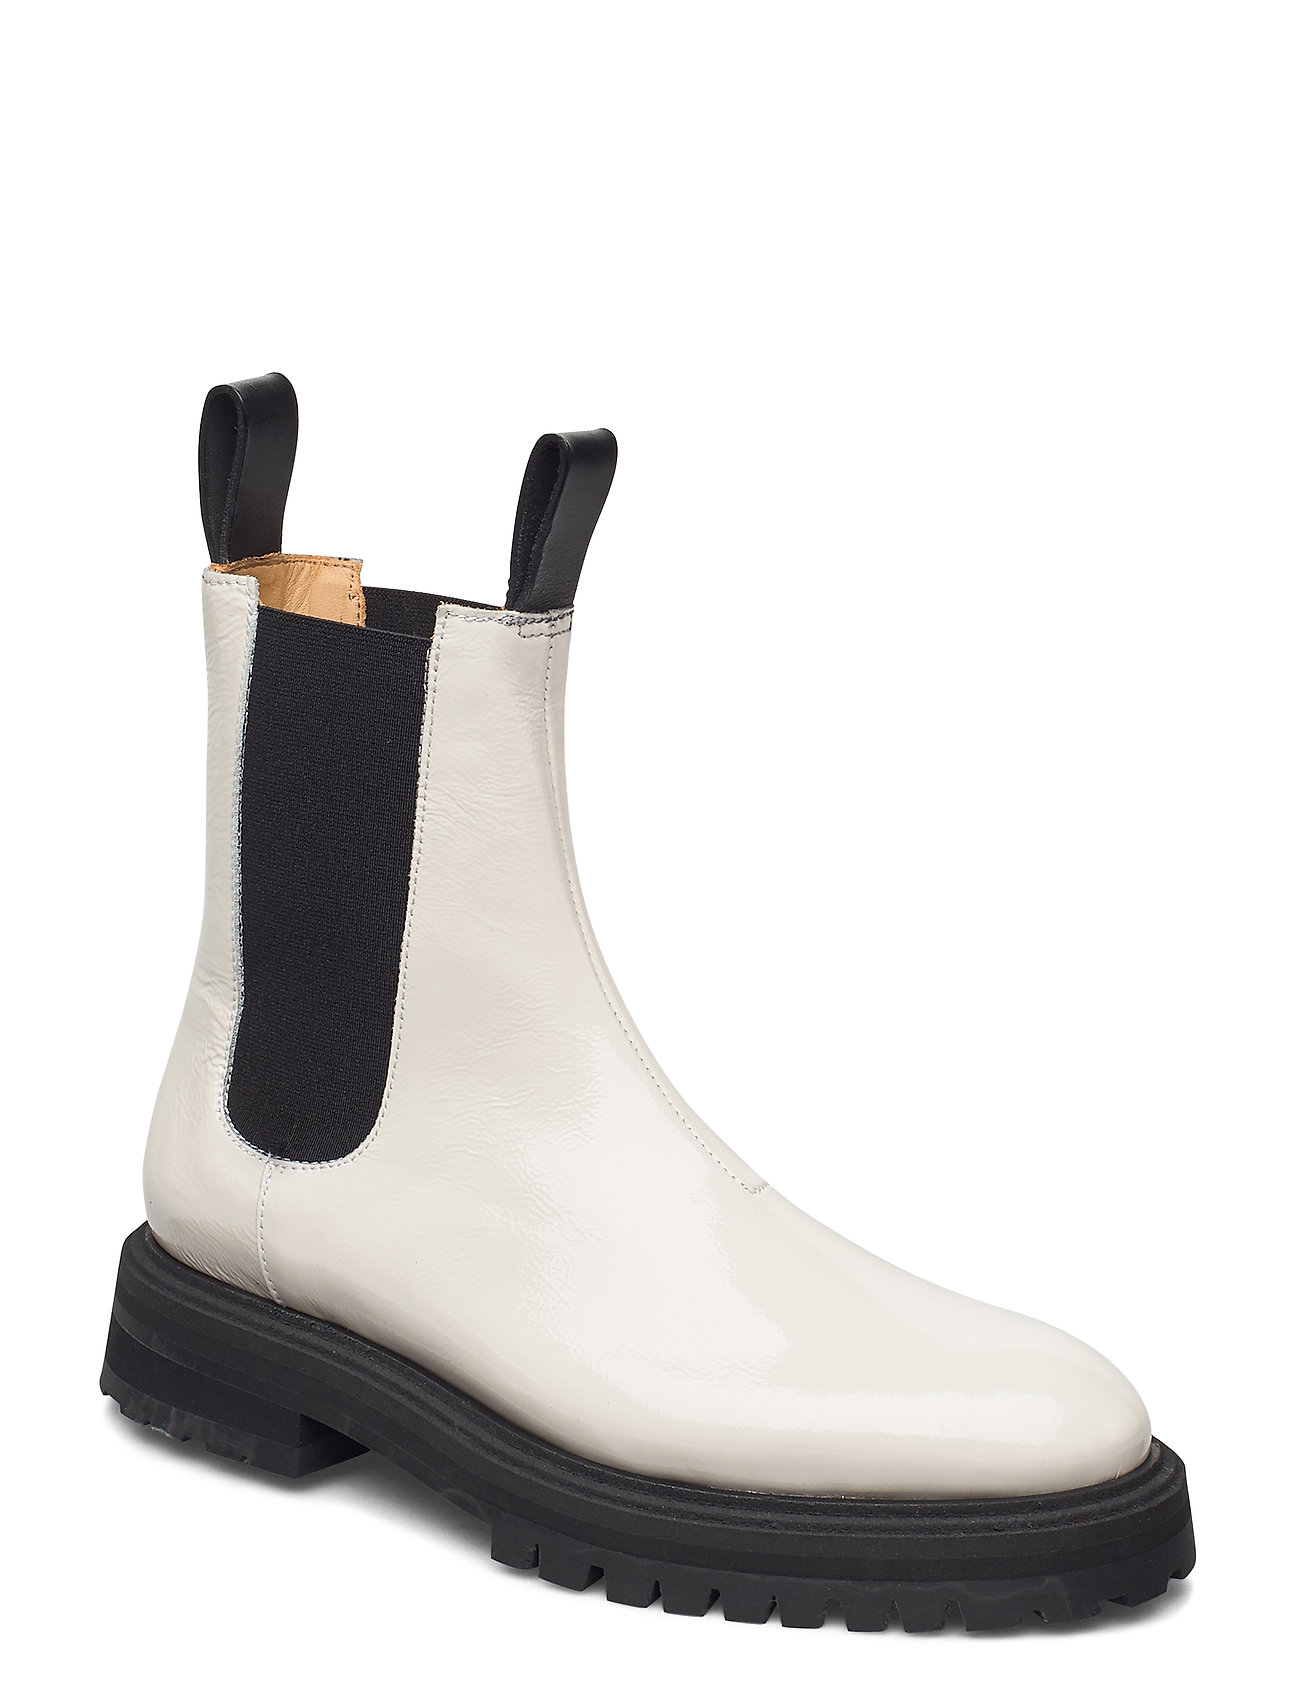 Image of Goal Digger Chelsea Boot Shoes Chelsea Boots Creme ANNY NORD (3446808803)